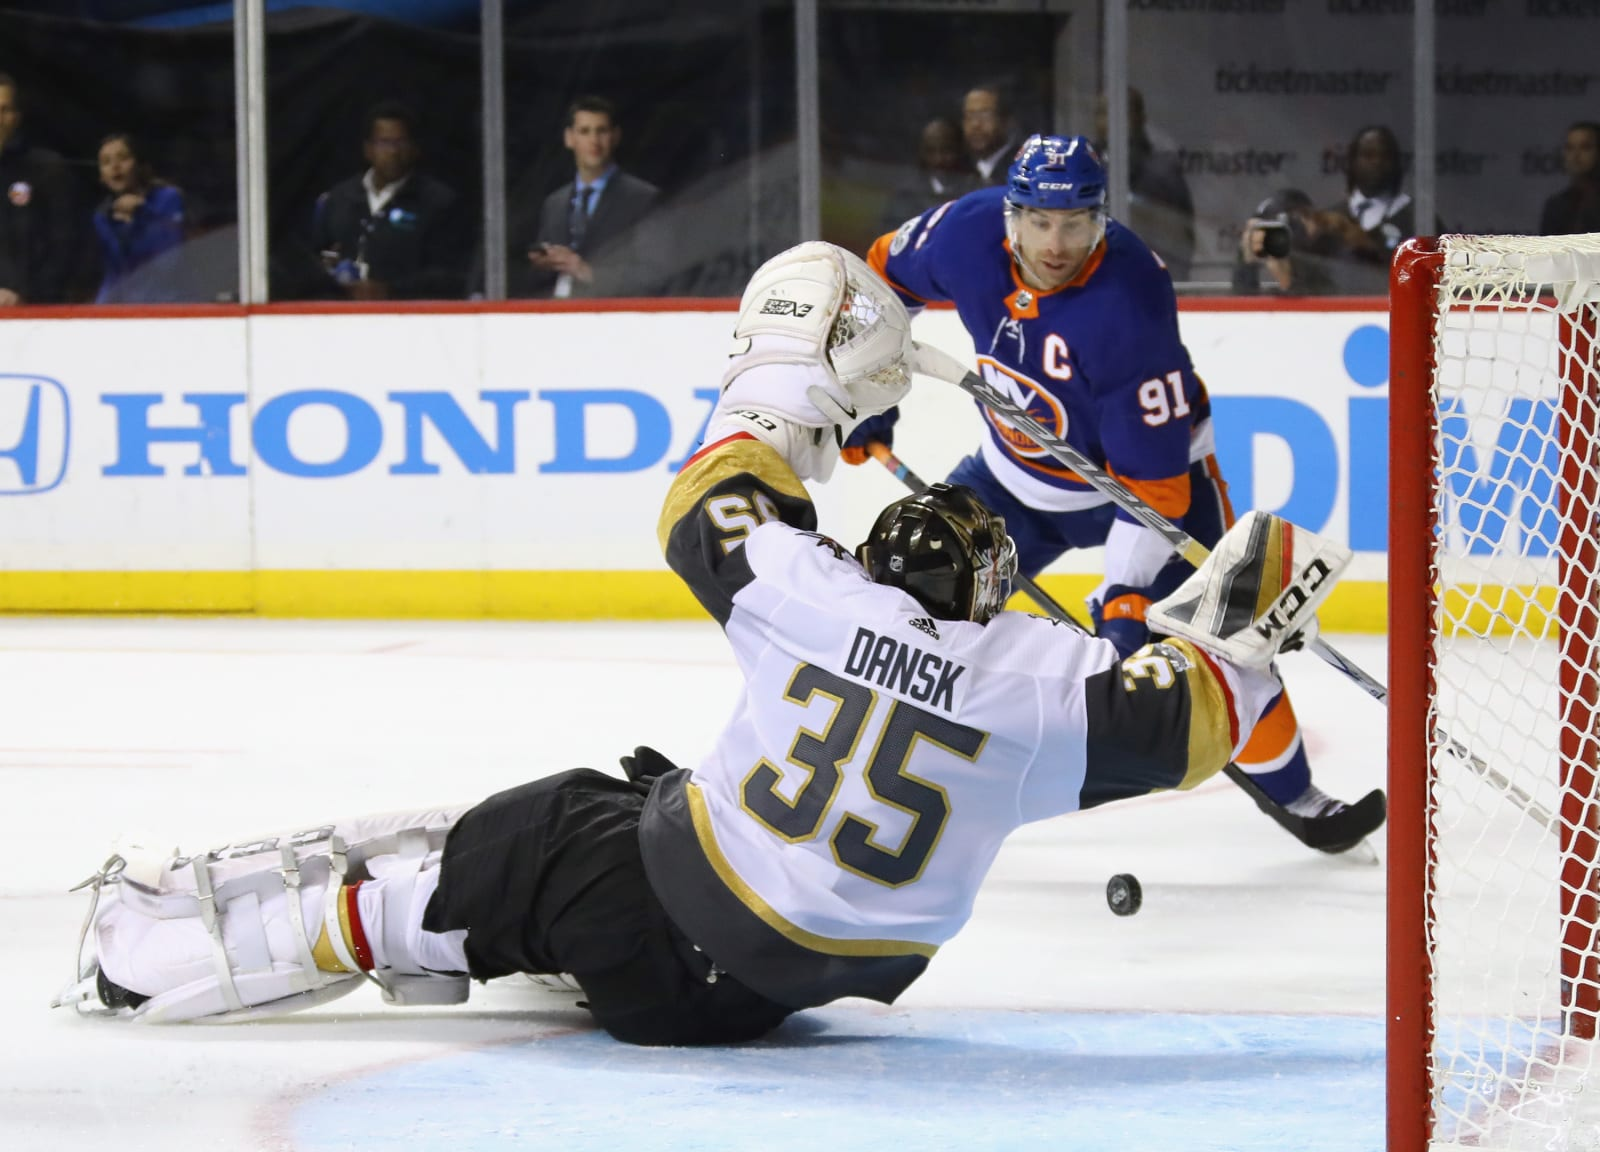 Oscar Dansk #35 of the Vegas Golden Knights blocks the net against John Tavares #91 of the New York Islanders.